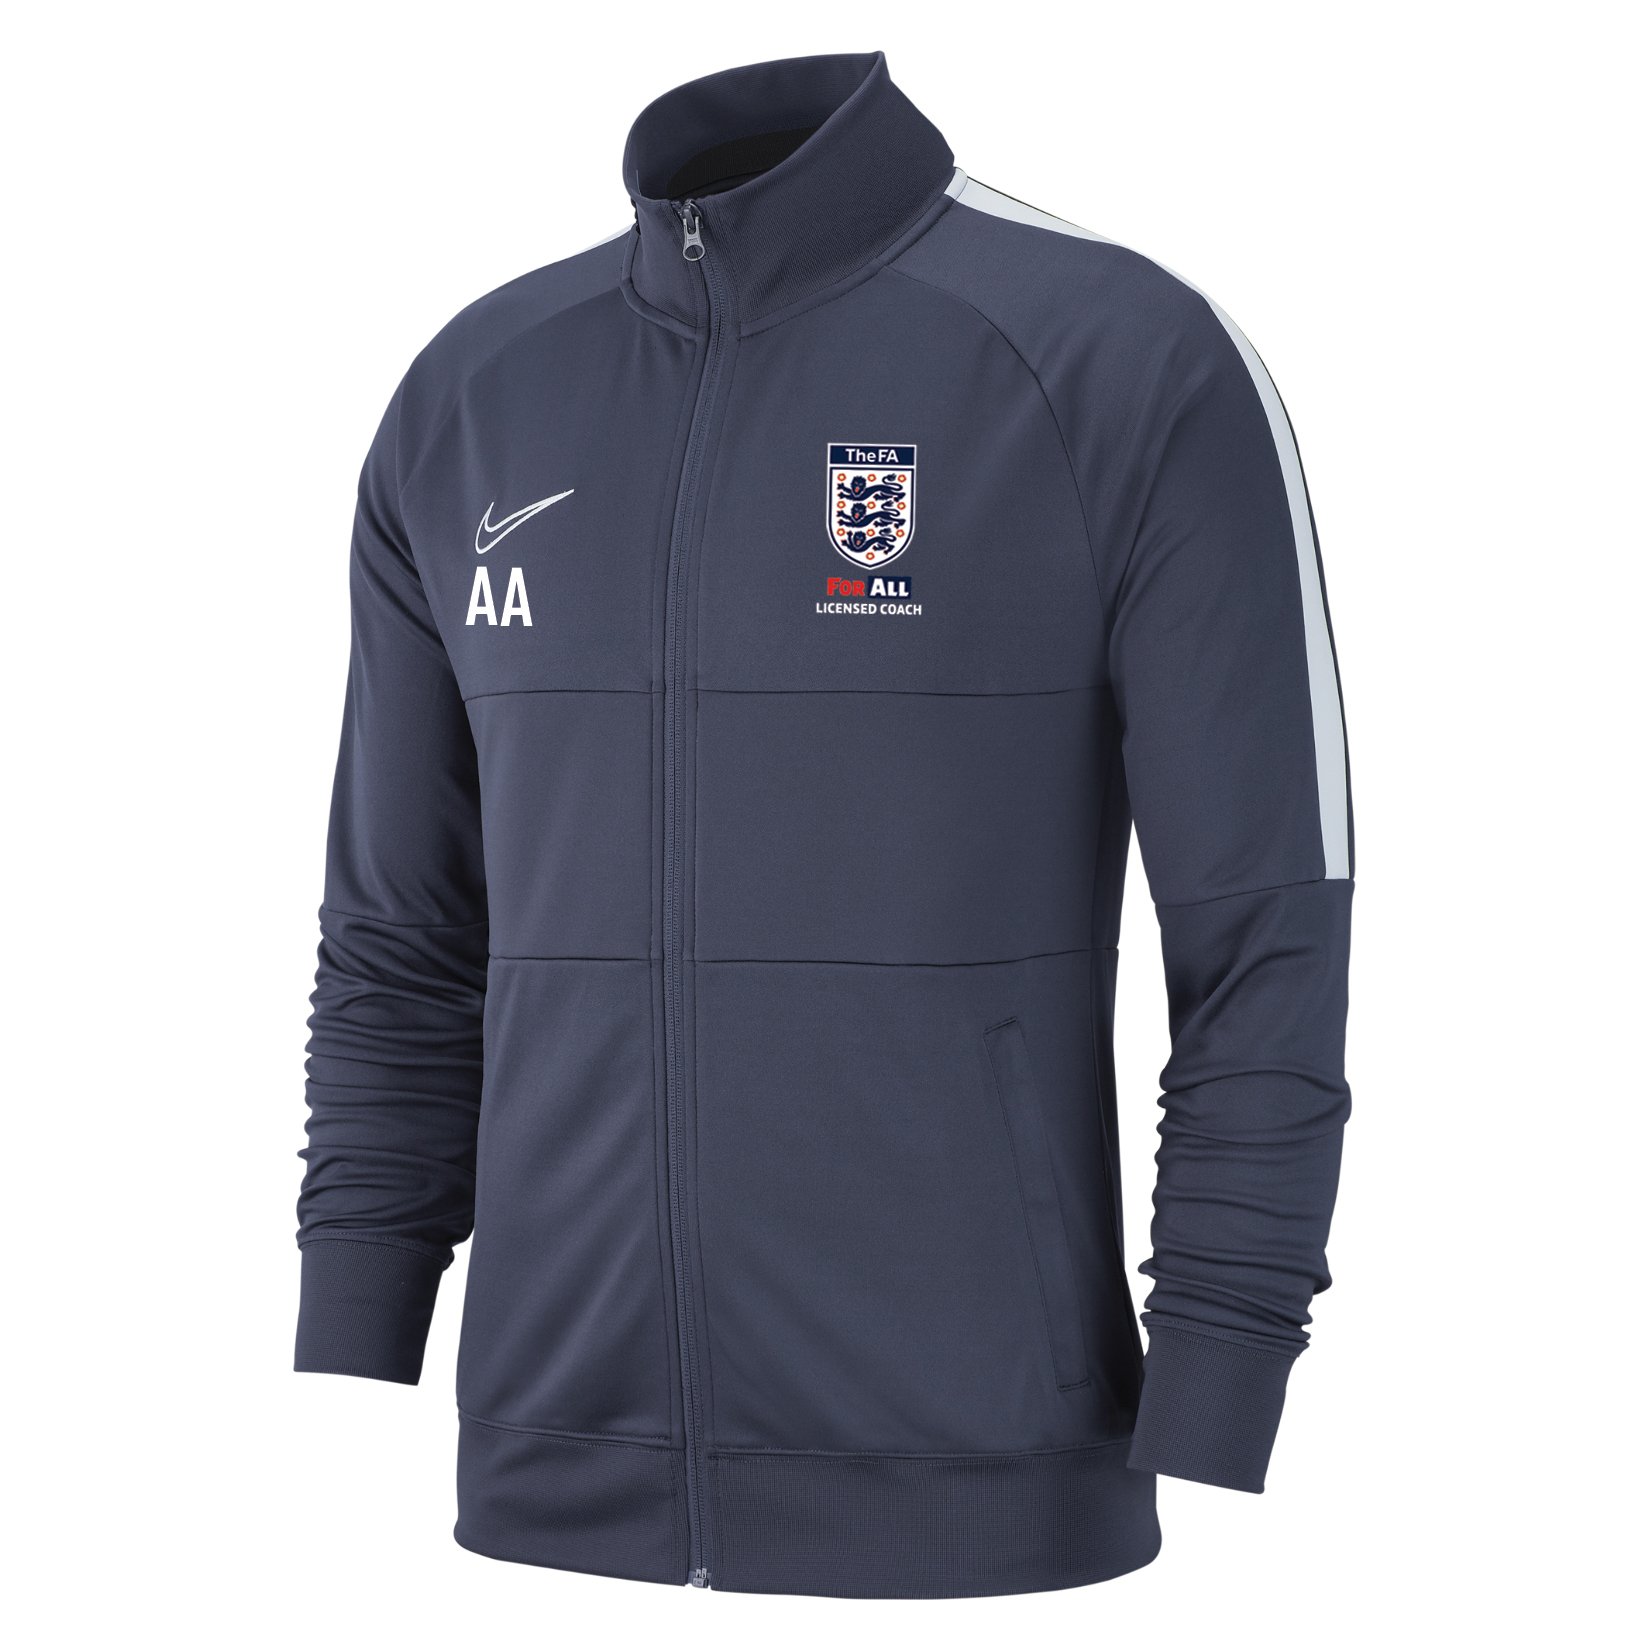 Nike Dri-fit Academy 19 Knit Track Jacket